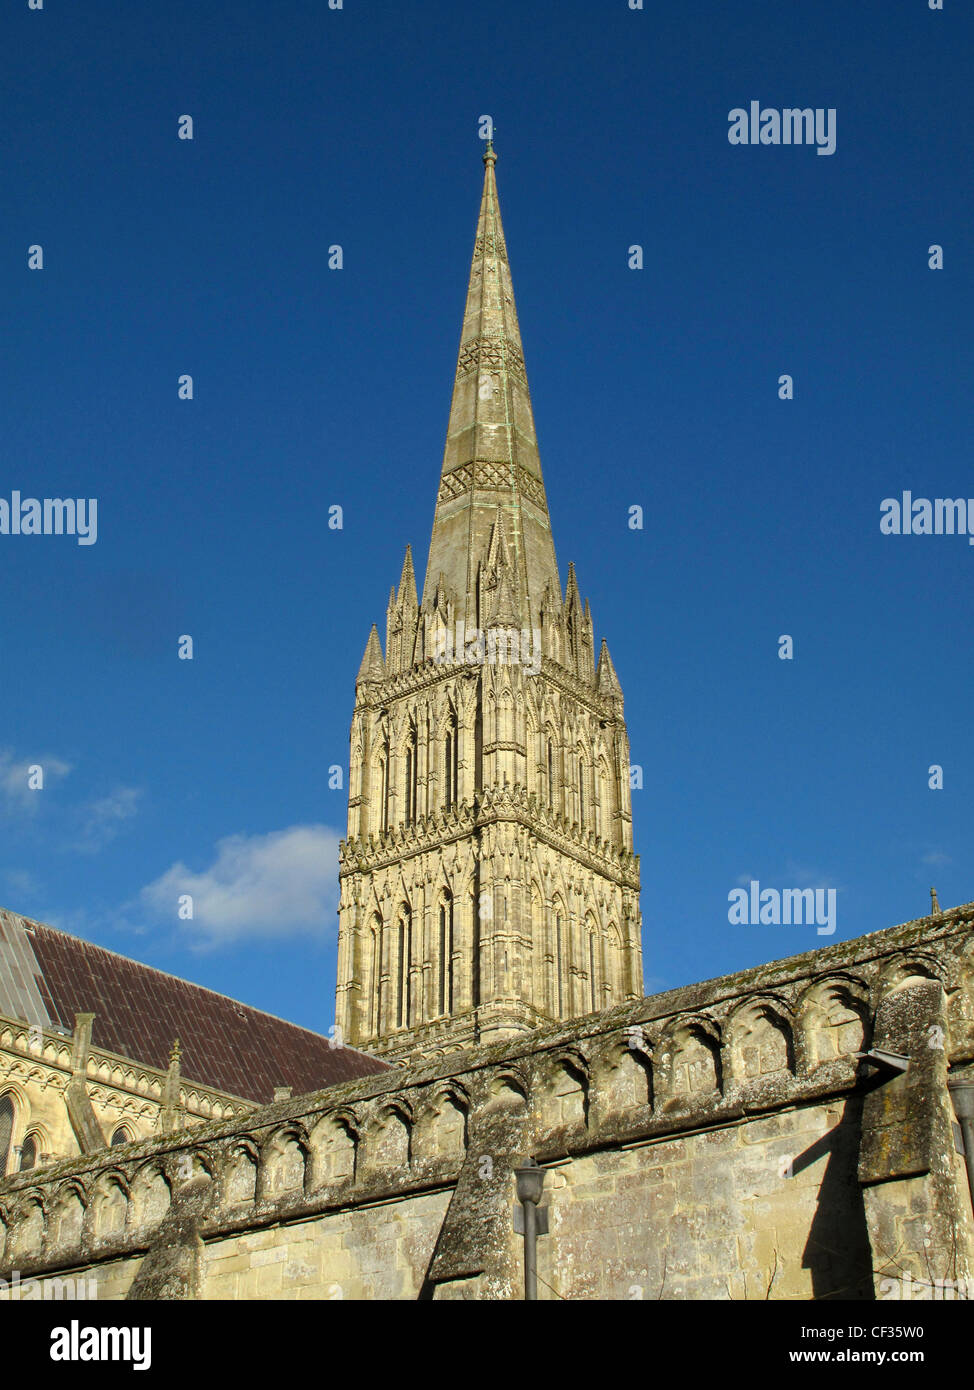 The spire of Salisbury Cathedral, the tallest church spire in the UK. - Stock Image